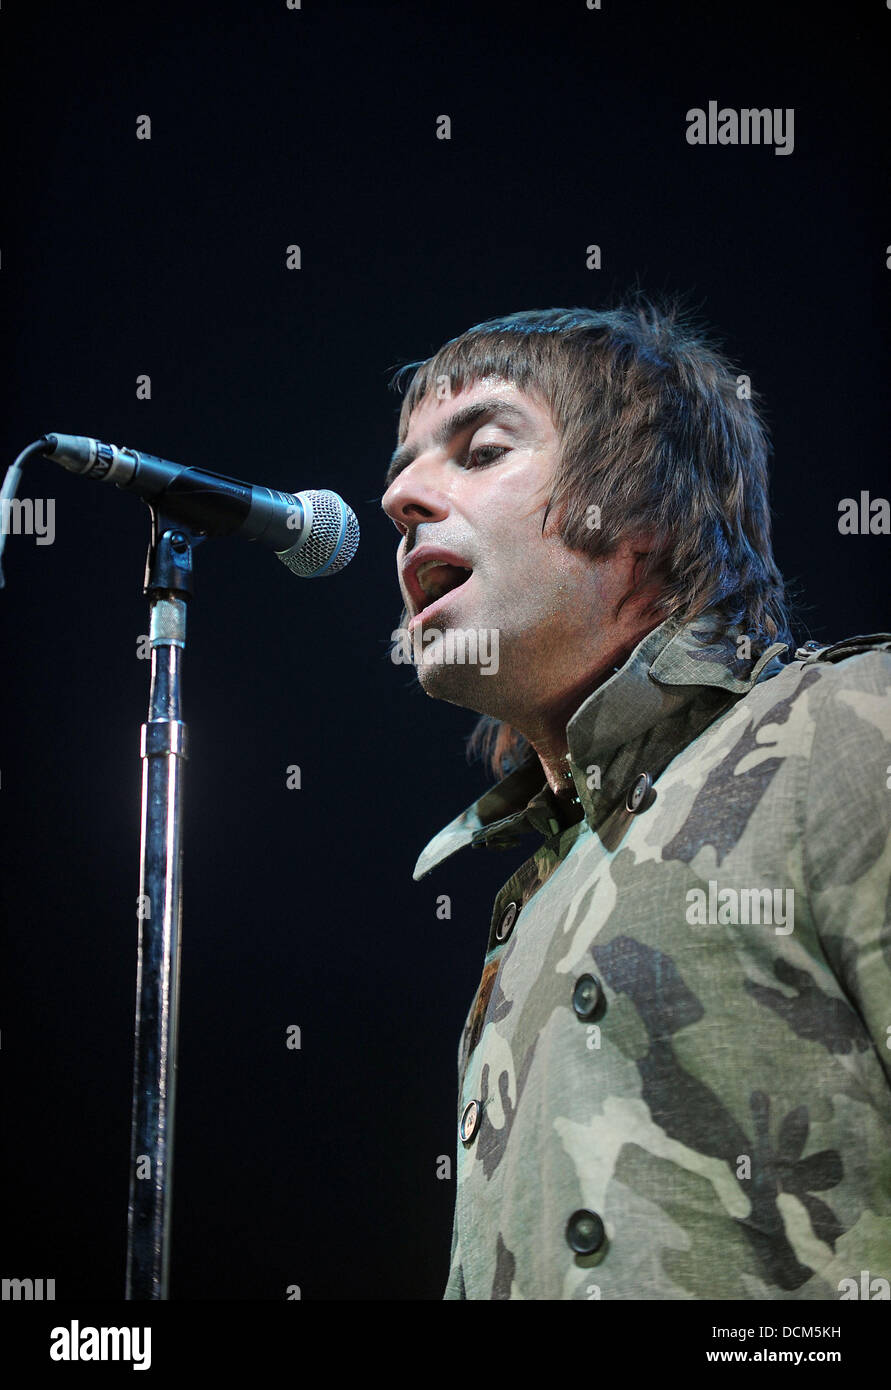 Liam Gallagher of Beady Eye performing at the Heineken Music Hall Amsterdam, The Netherlands - 18.10.11 - Stock Image